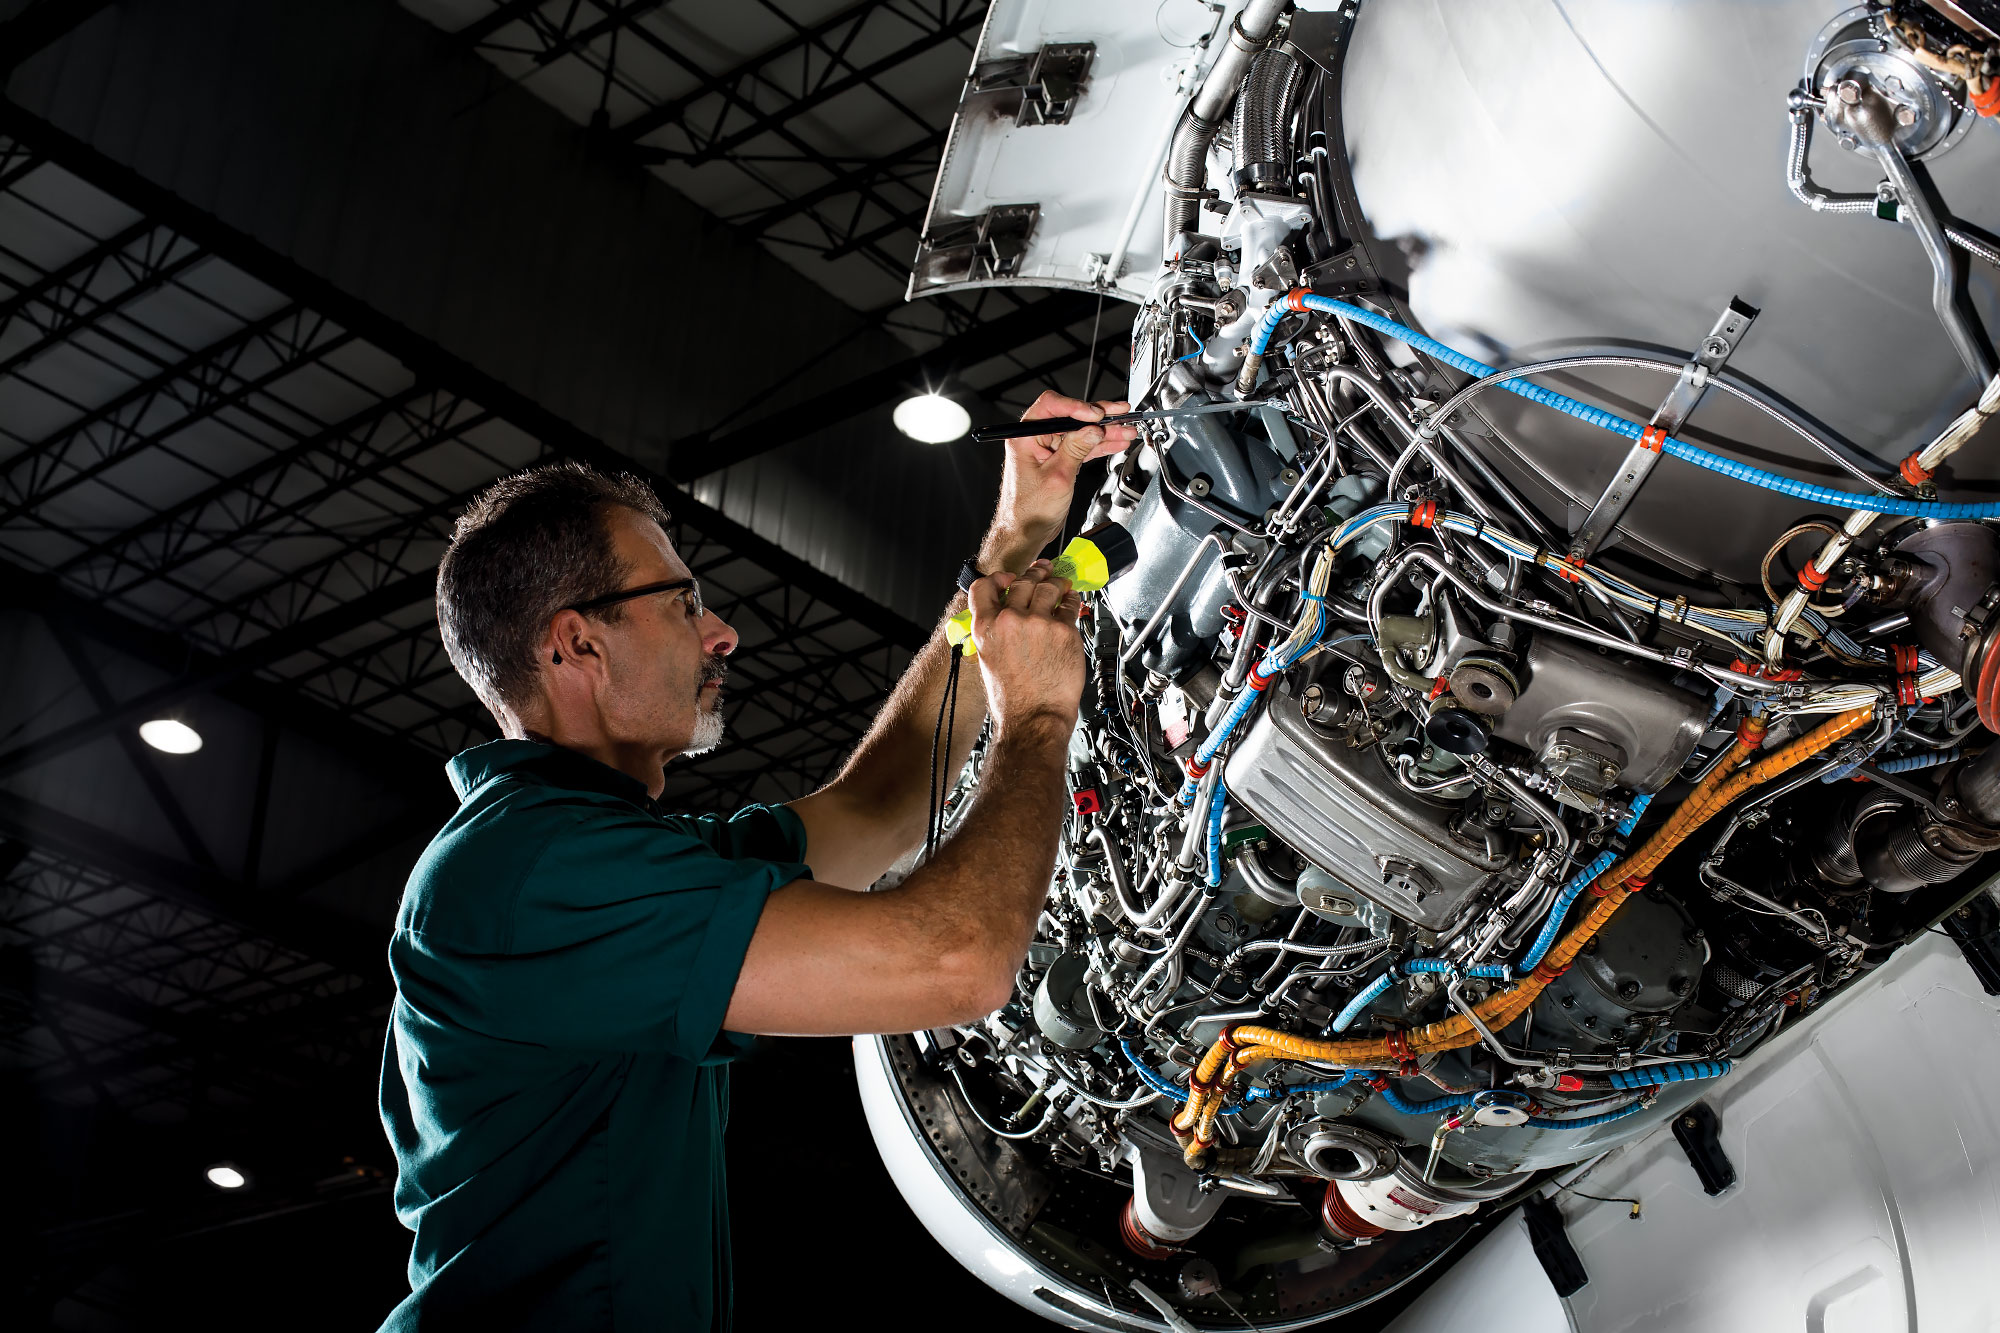 technician inspects jet engine cowling